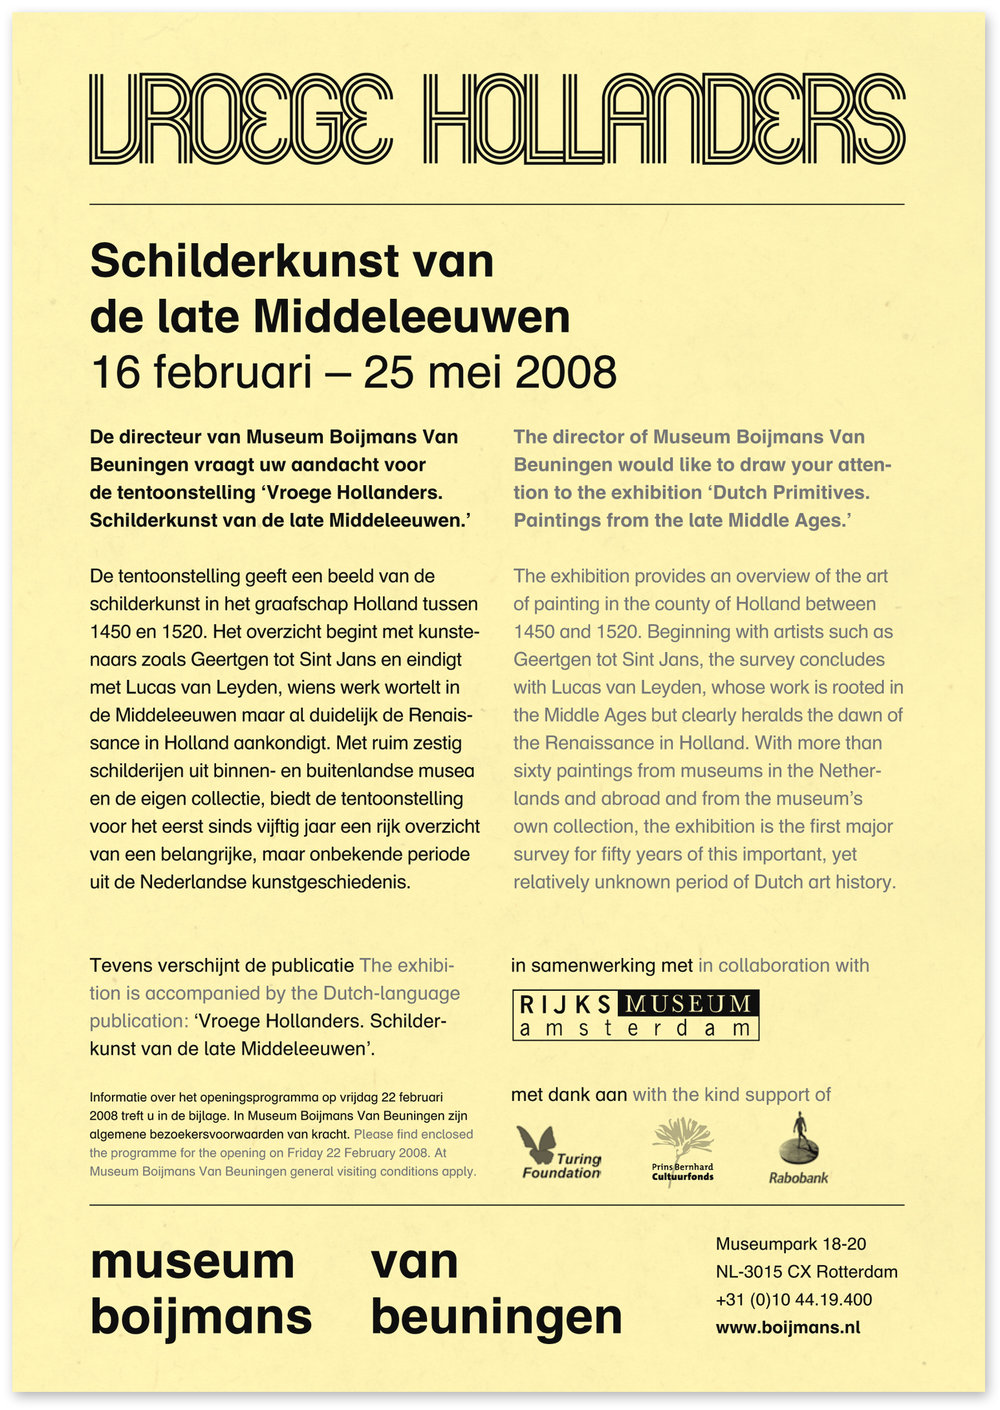 bstudio_colorado-boijmans_van_beuningen-flyer_vroege_hollanders-2